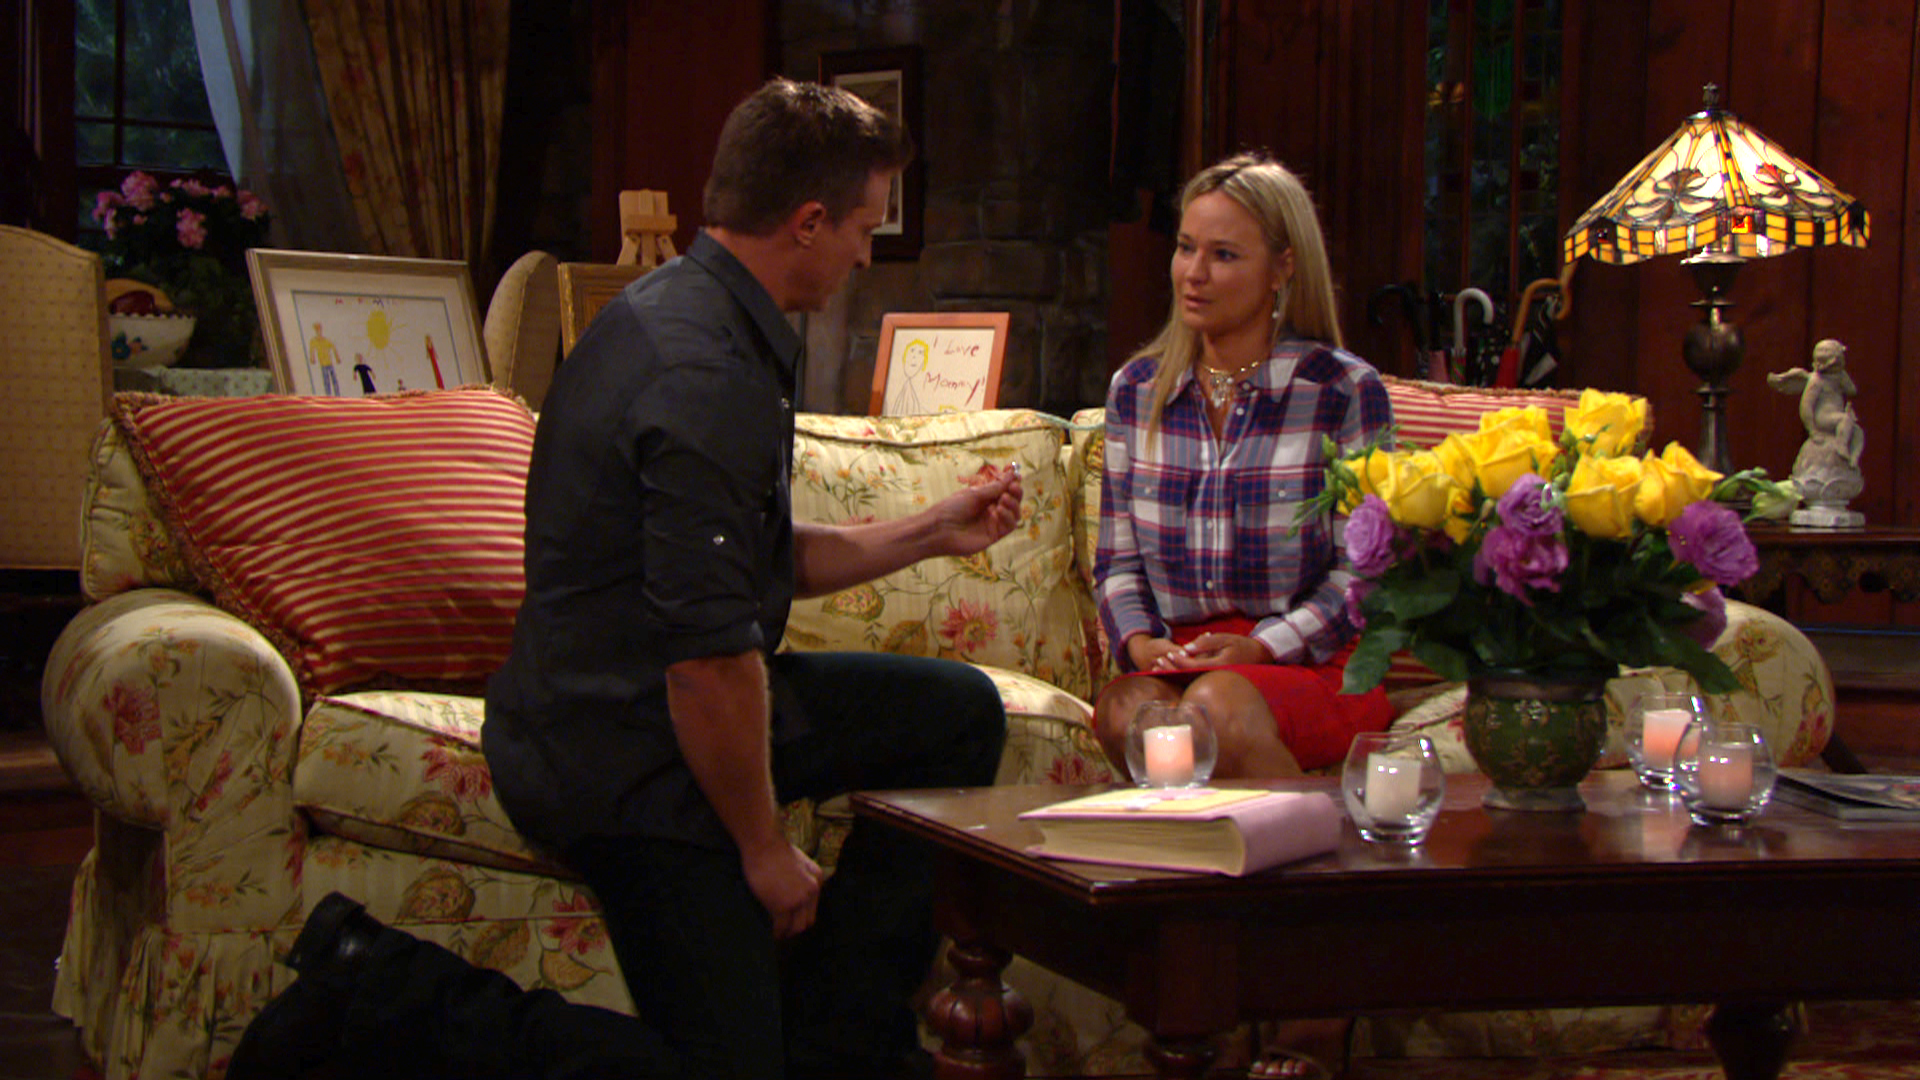 Dylan proposes to Sharon